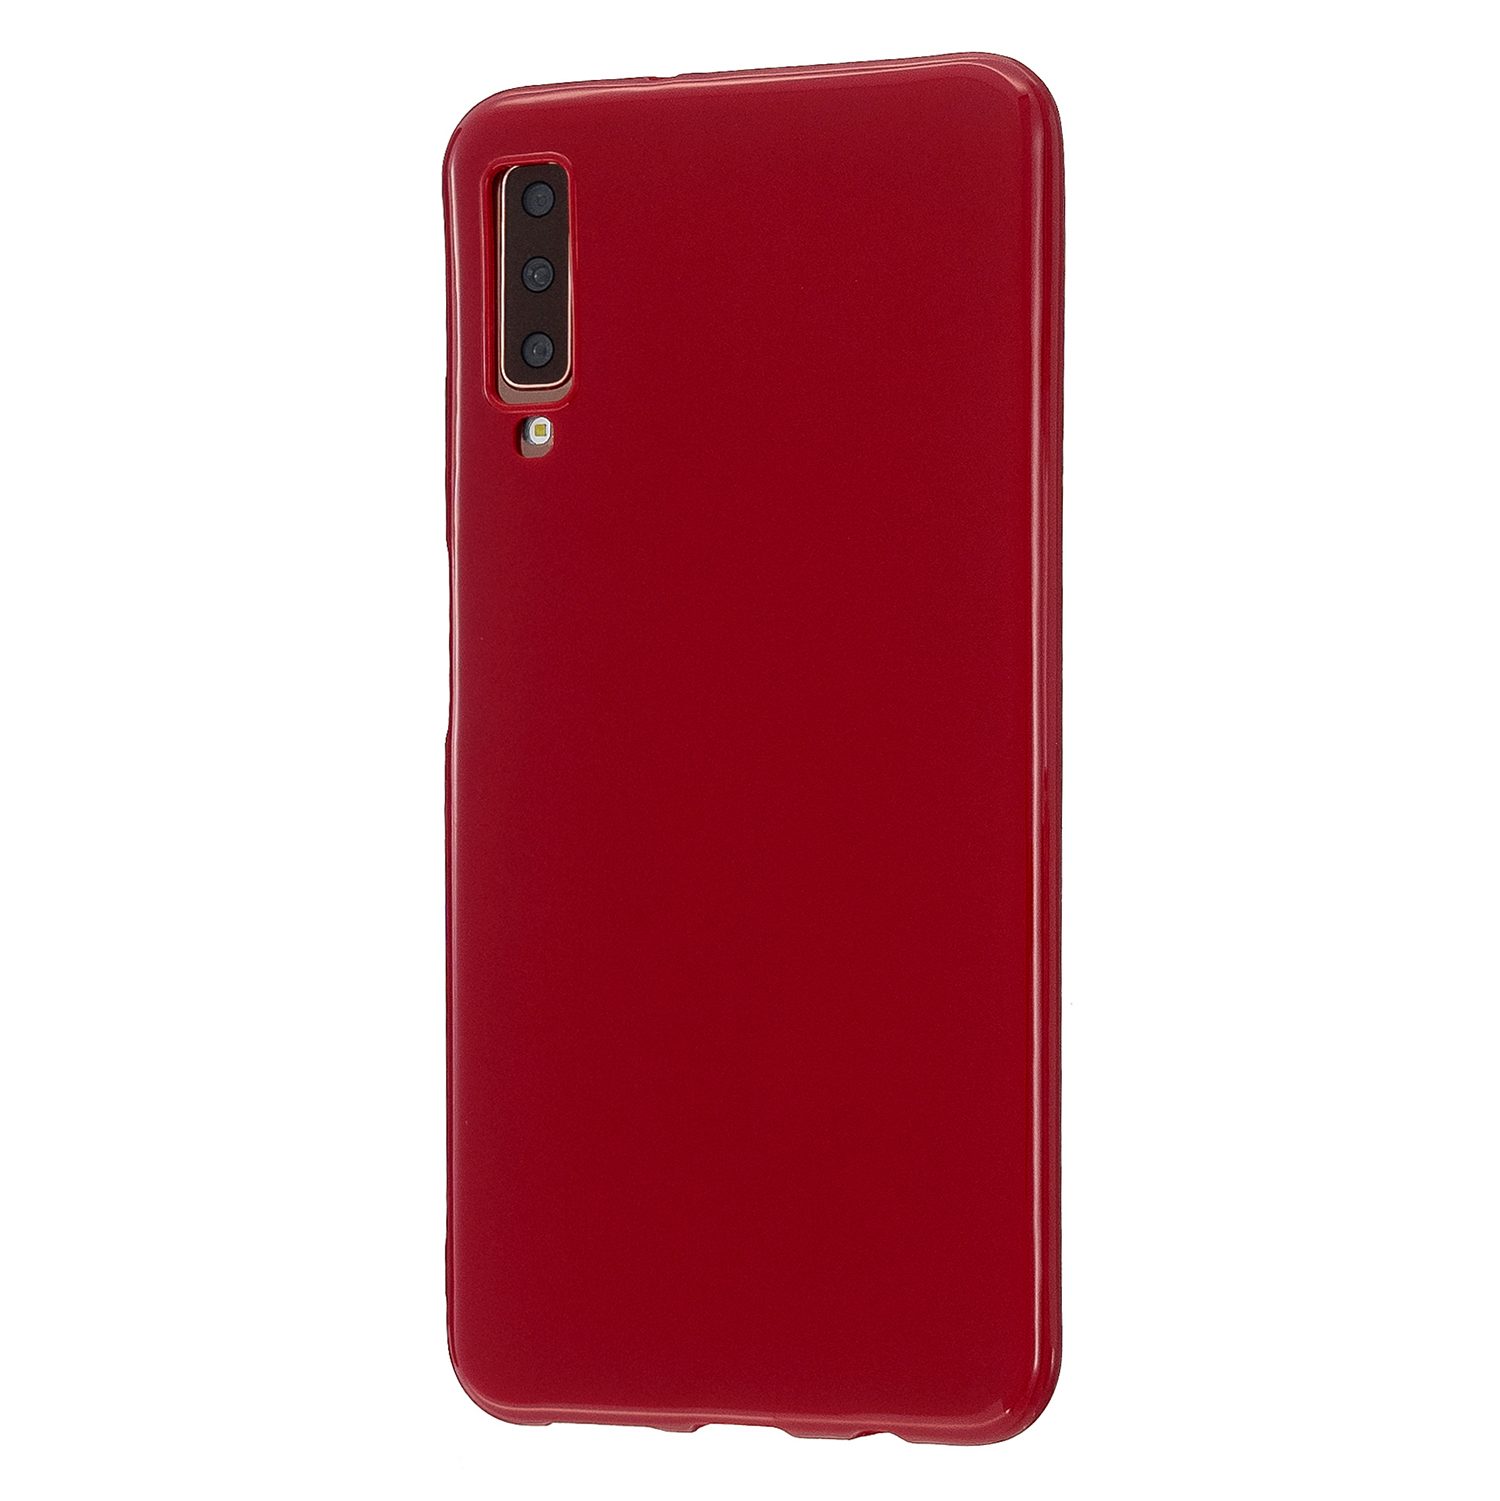 For Samsung A7 2018/A920 Smartphone Case Soft TPU Precise Cutouts Anti-slip Overal Protection Cellphone Cover  Rose red